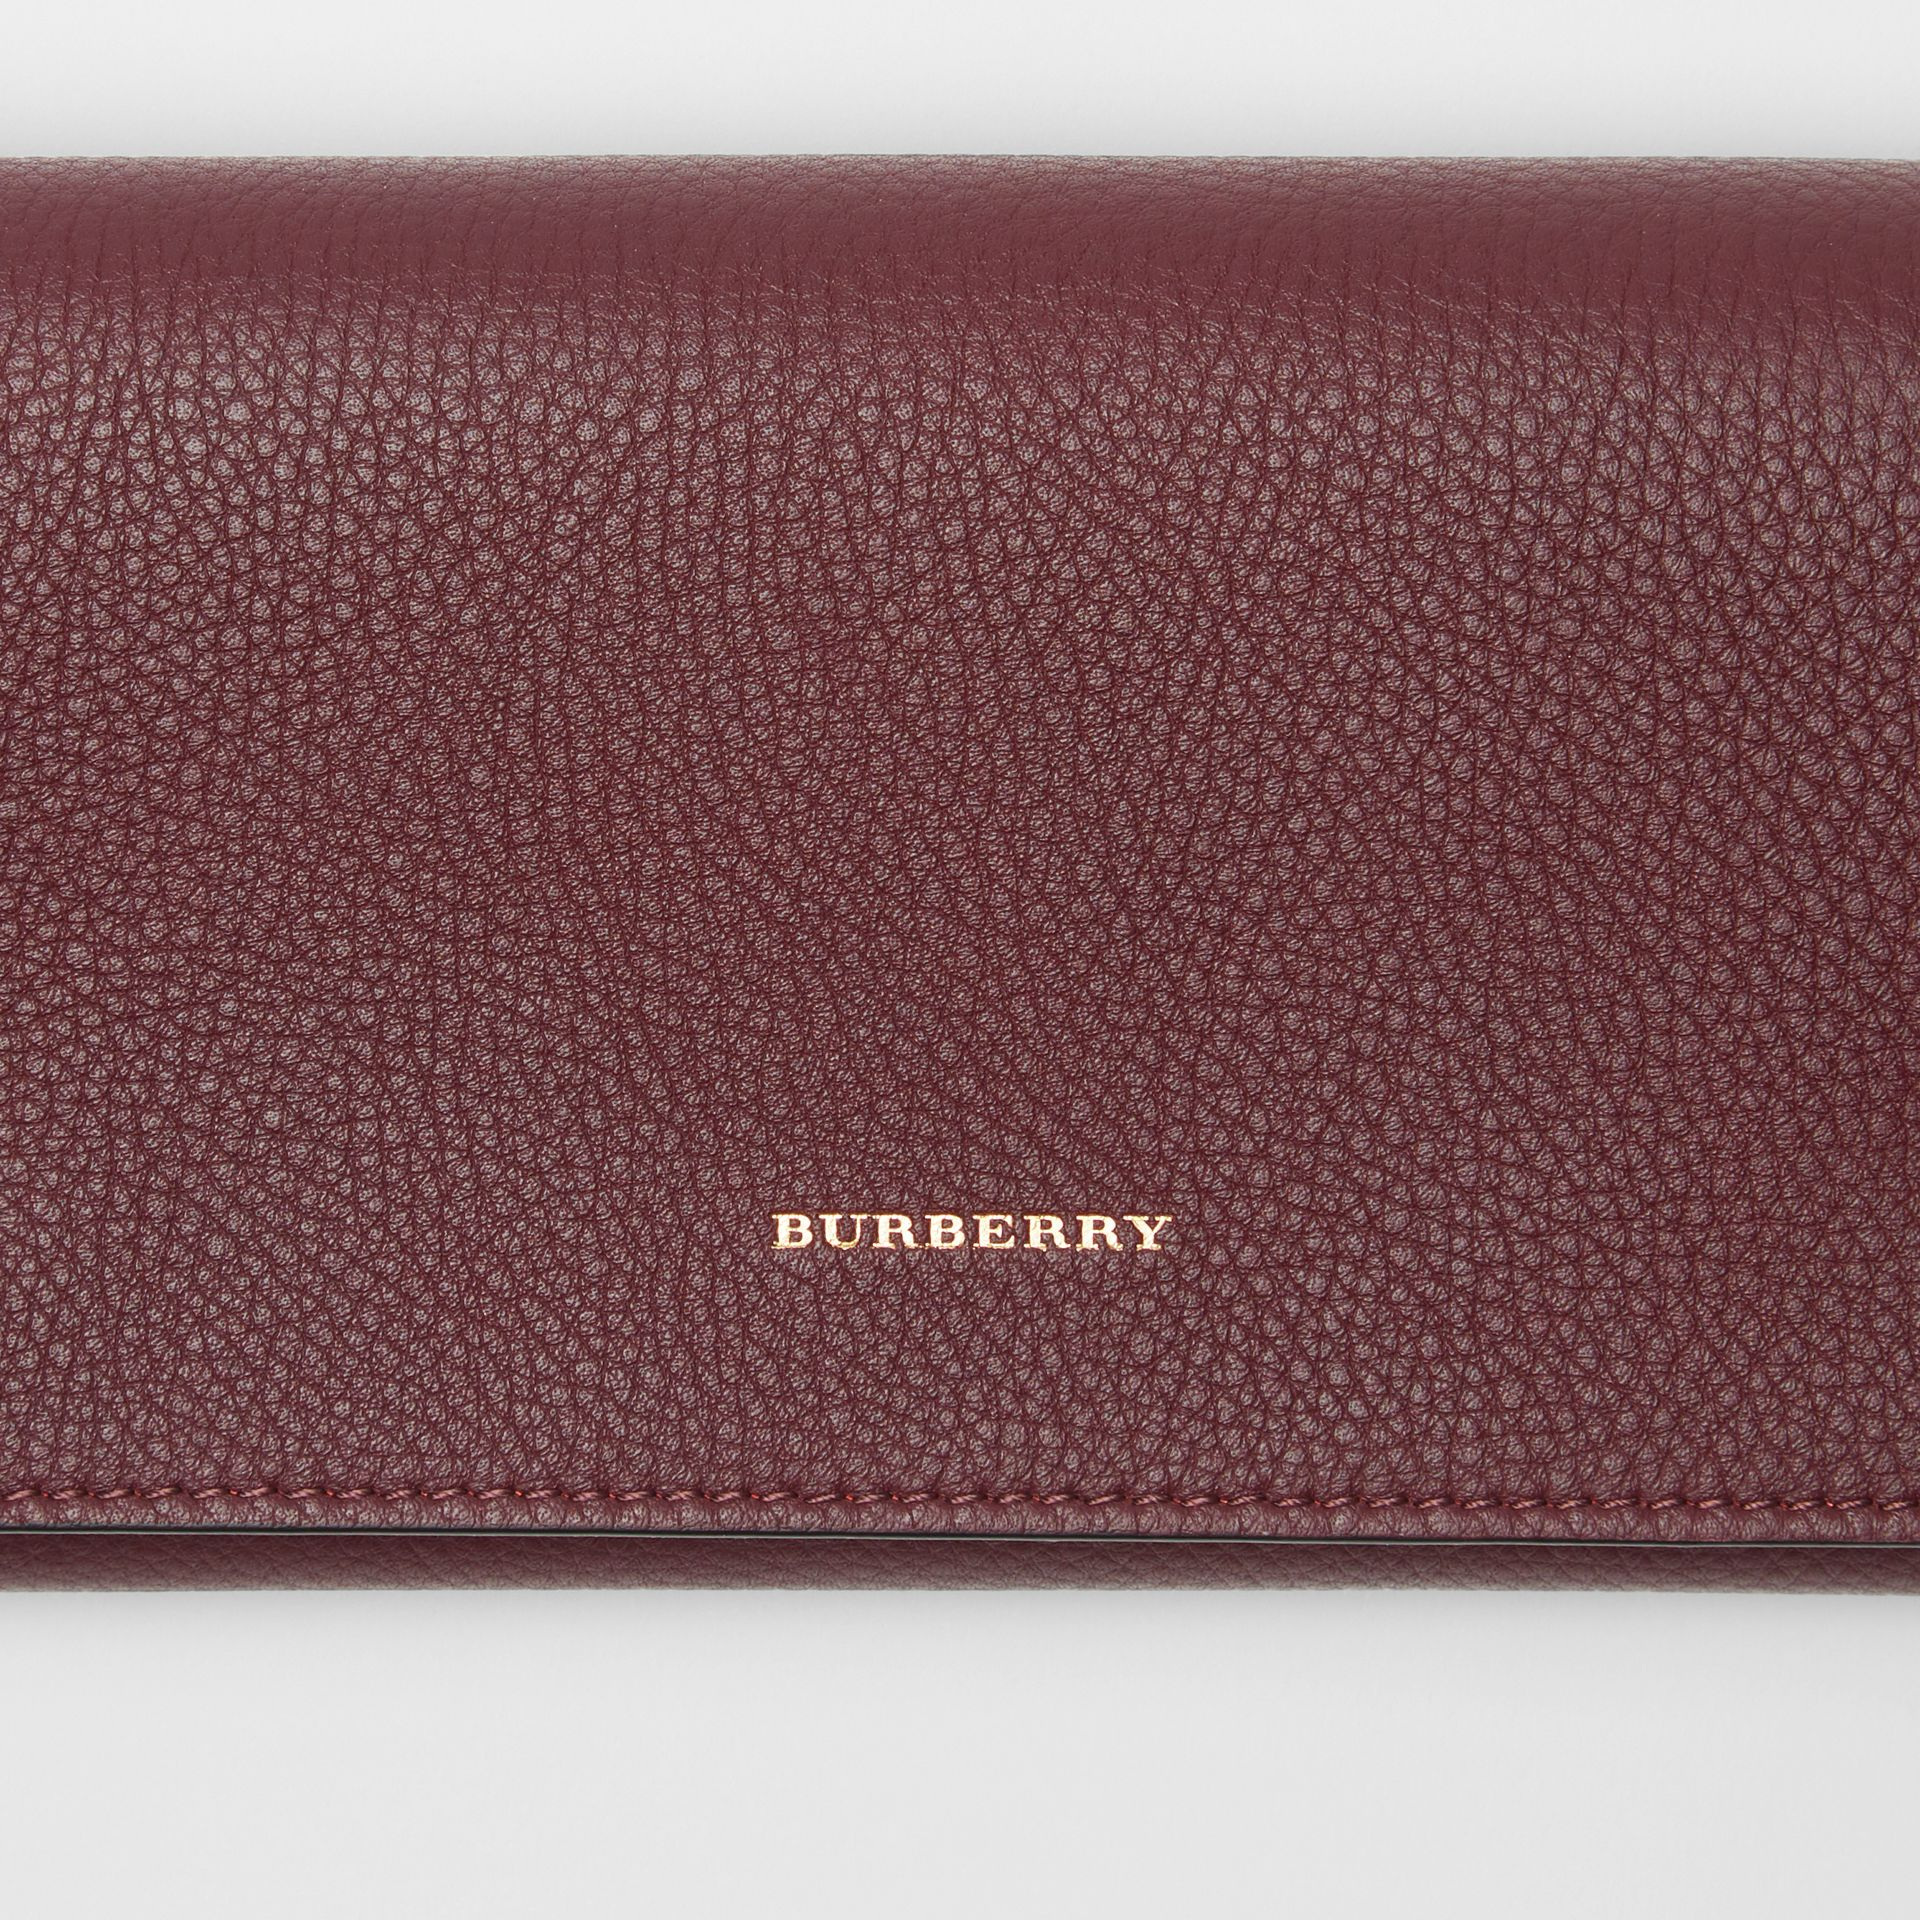 Two-tone Leather Continental Wallet in Deep Claret - Women | Burberry United Kingdom - gallery image 1